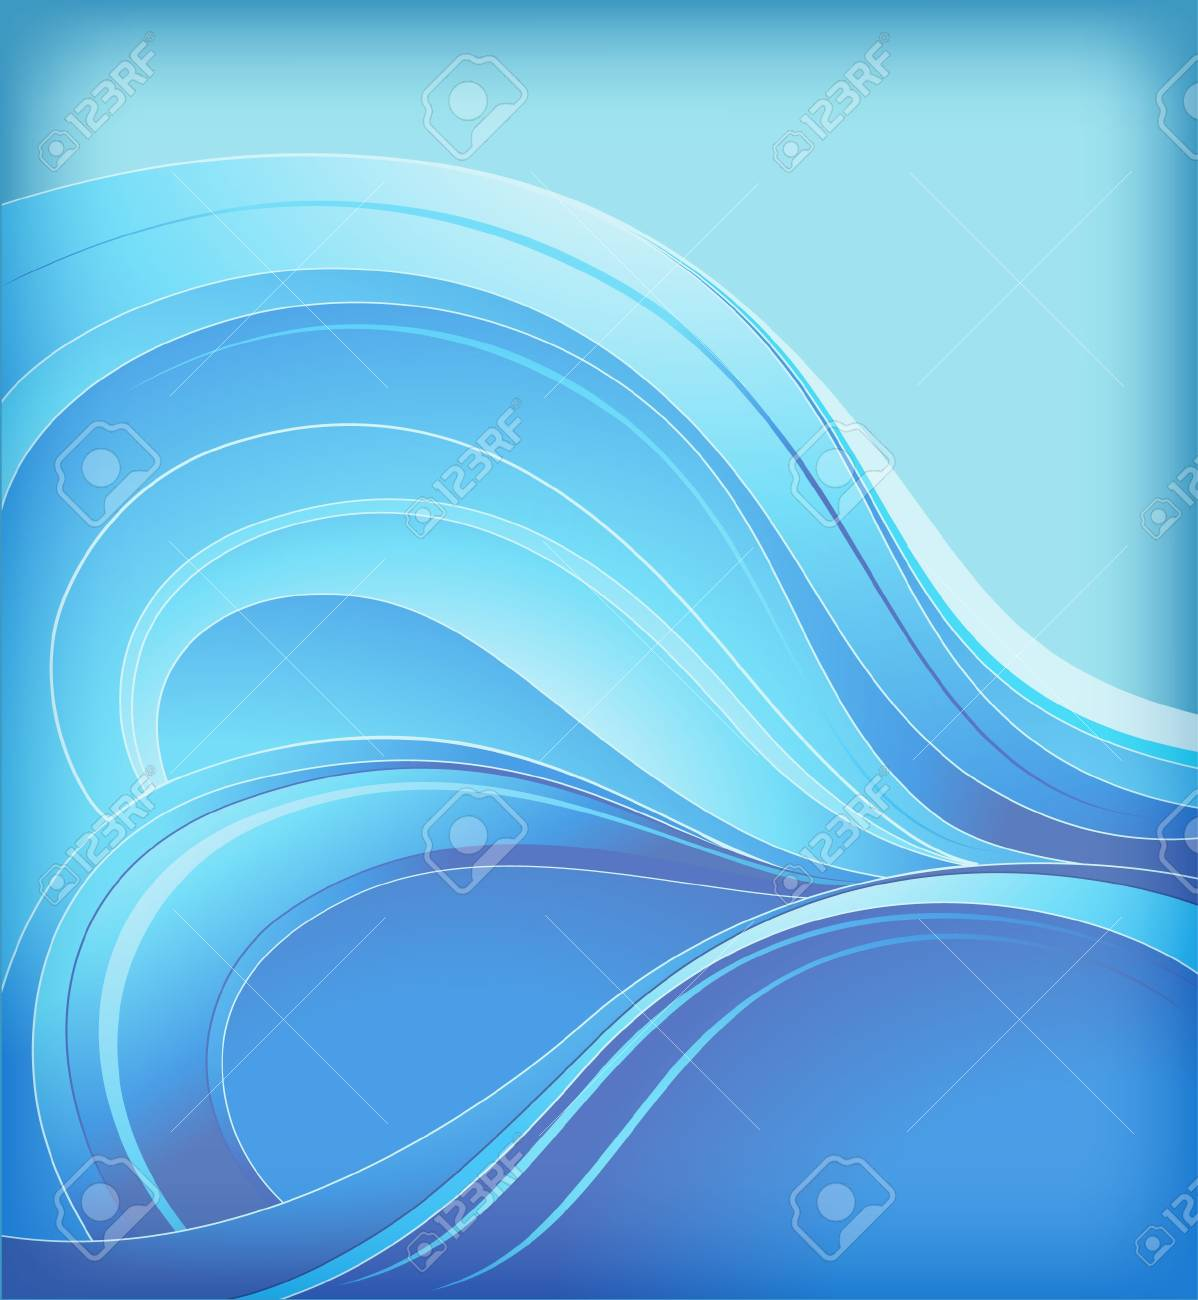 abstract background with sea waves - 11251783